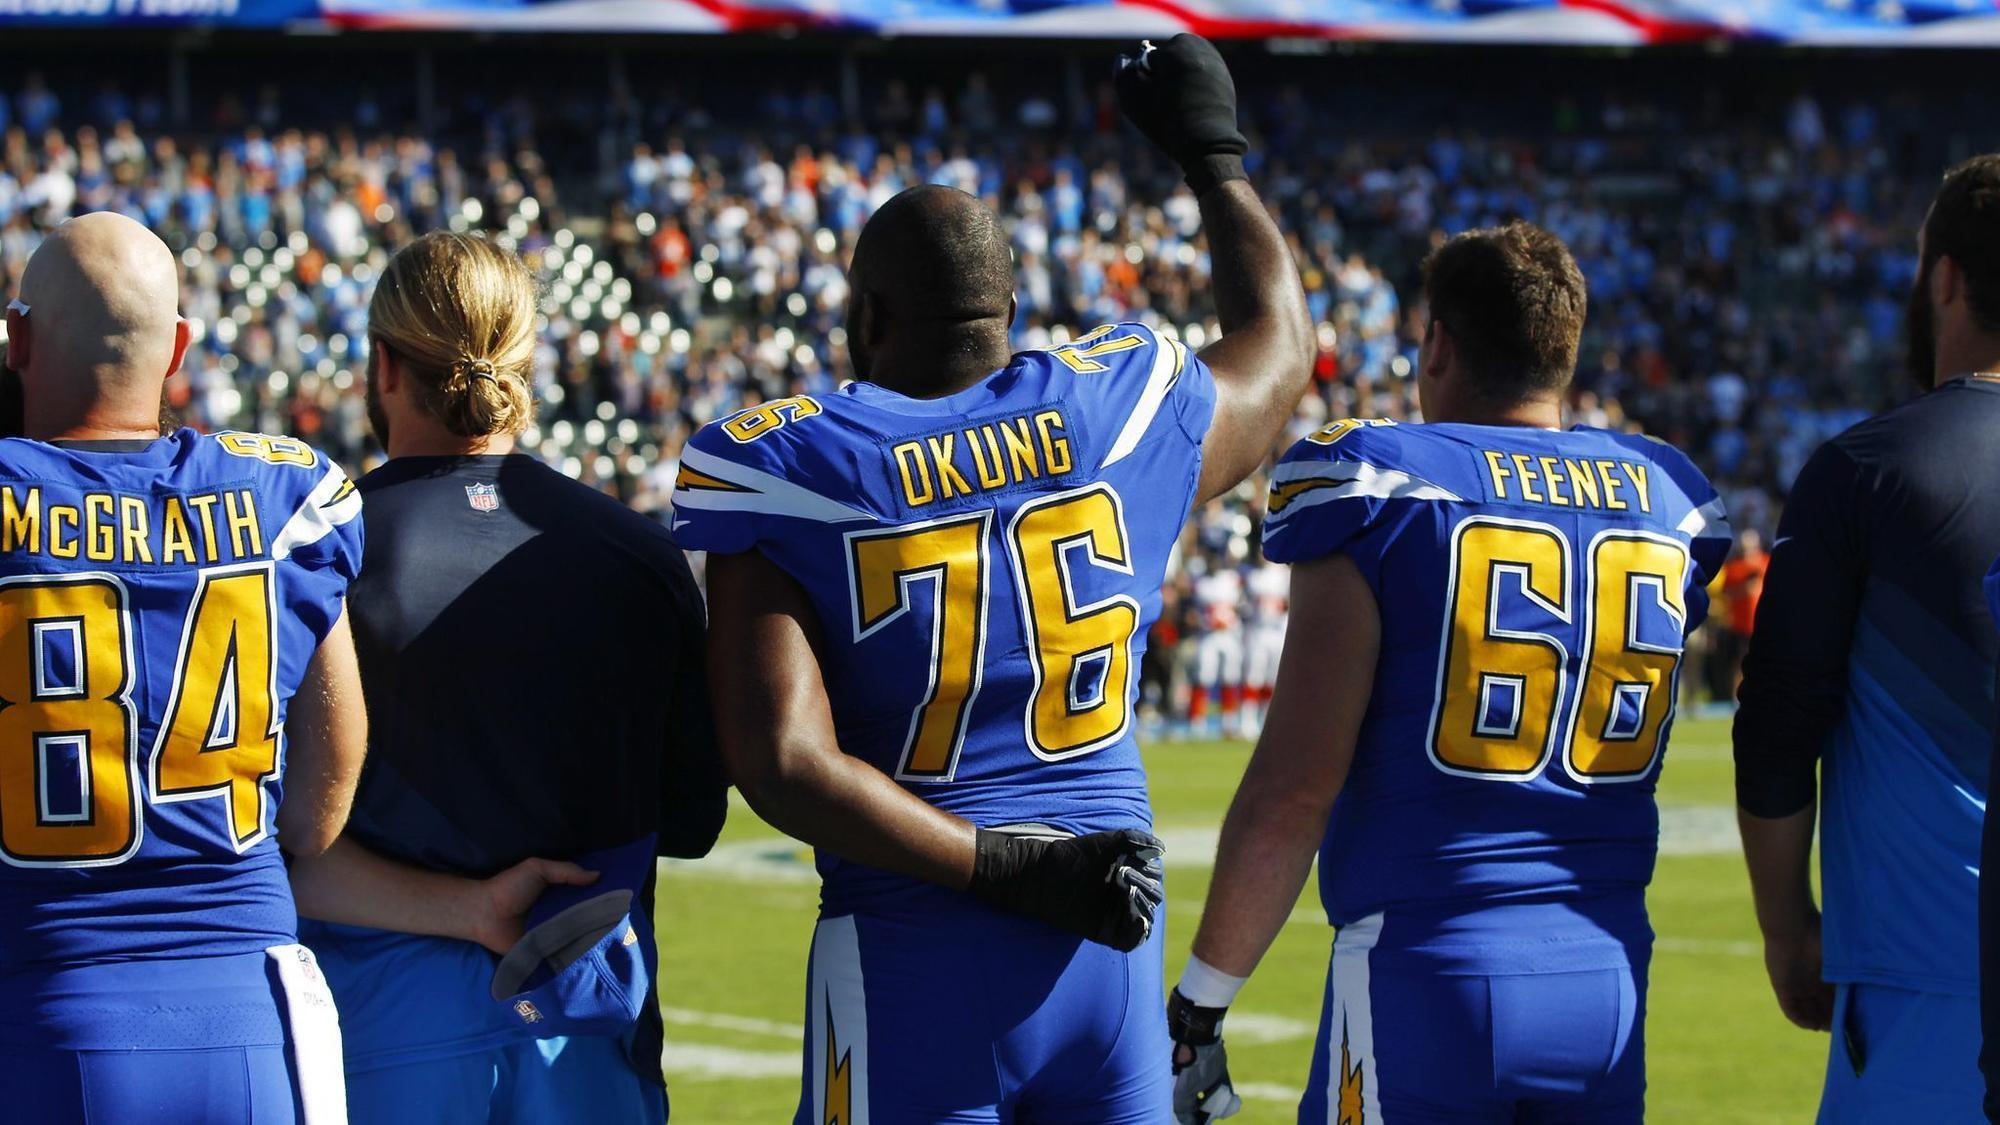 Sd-sp-chargers-okung-national-anthem-nfl-policy-20180530